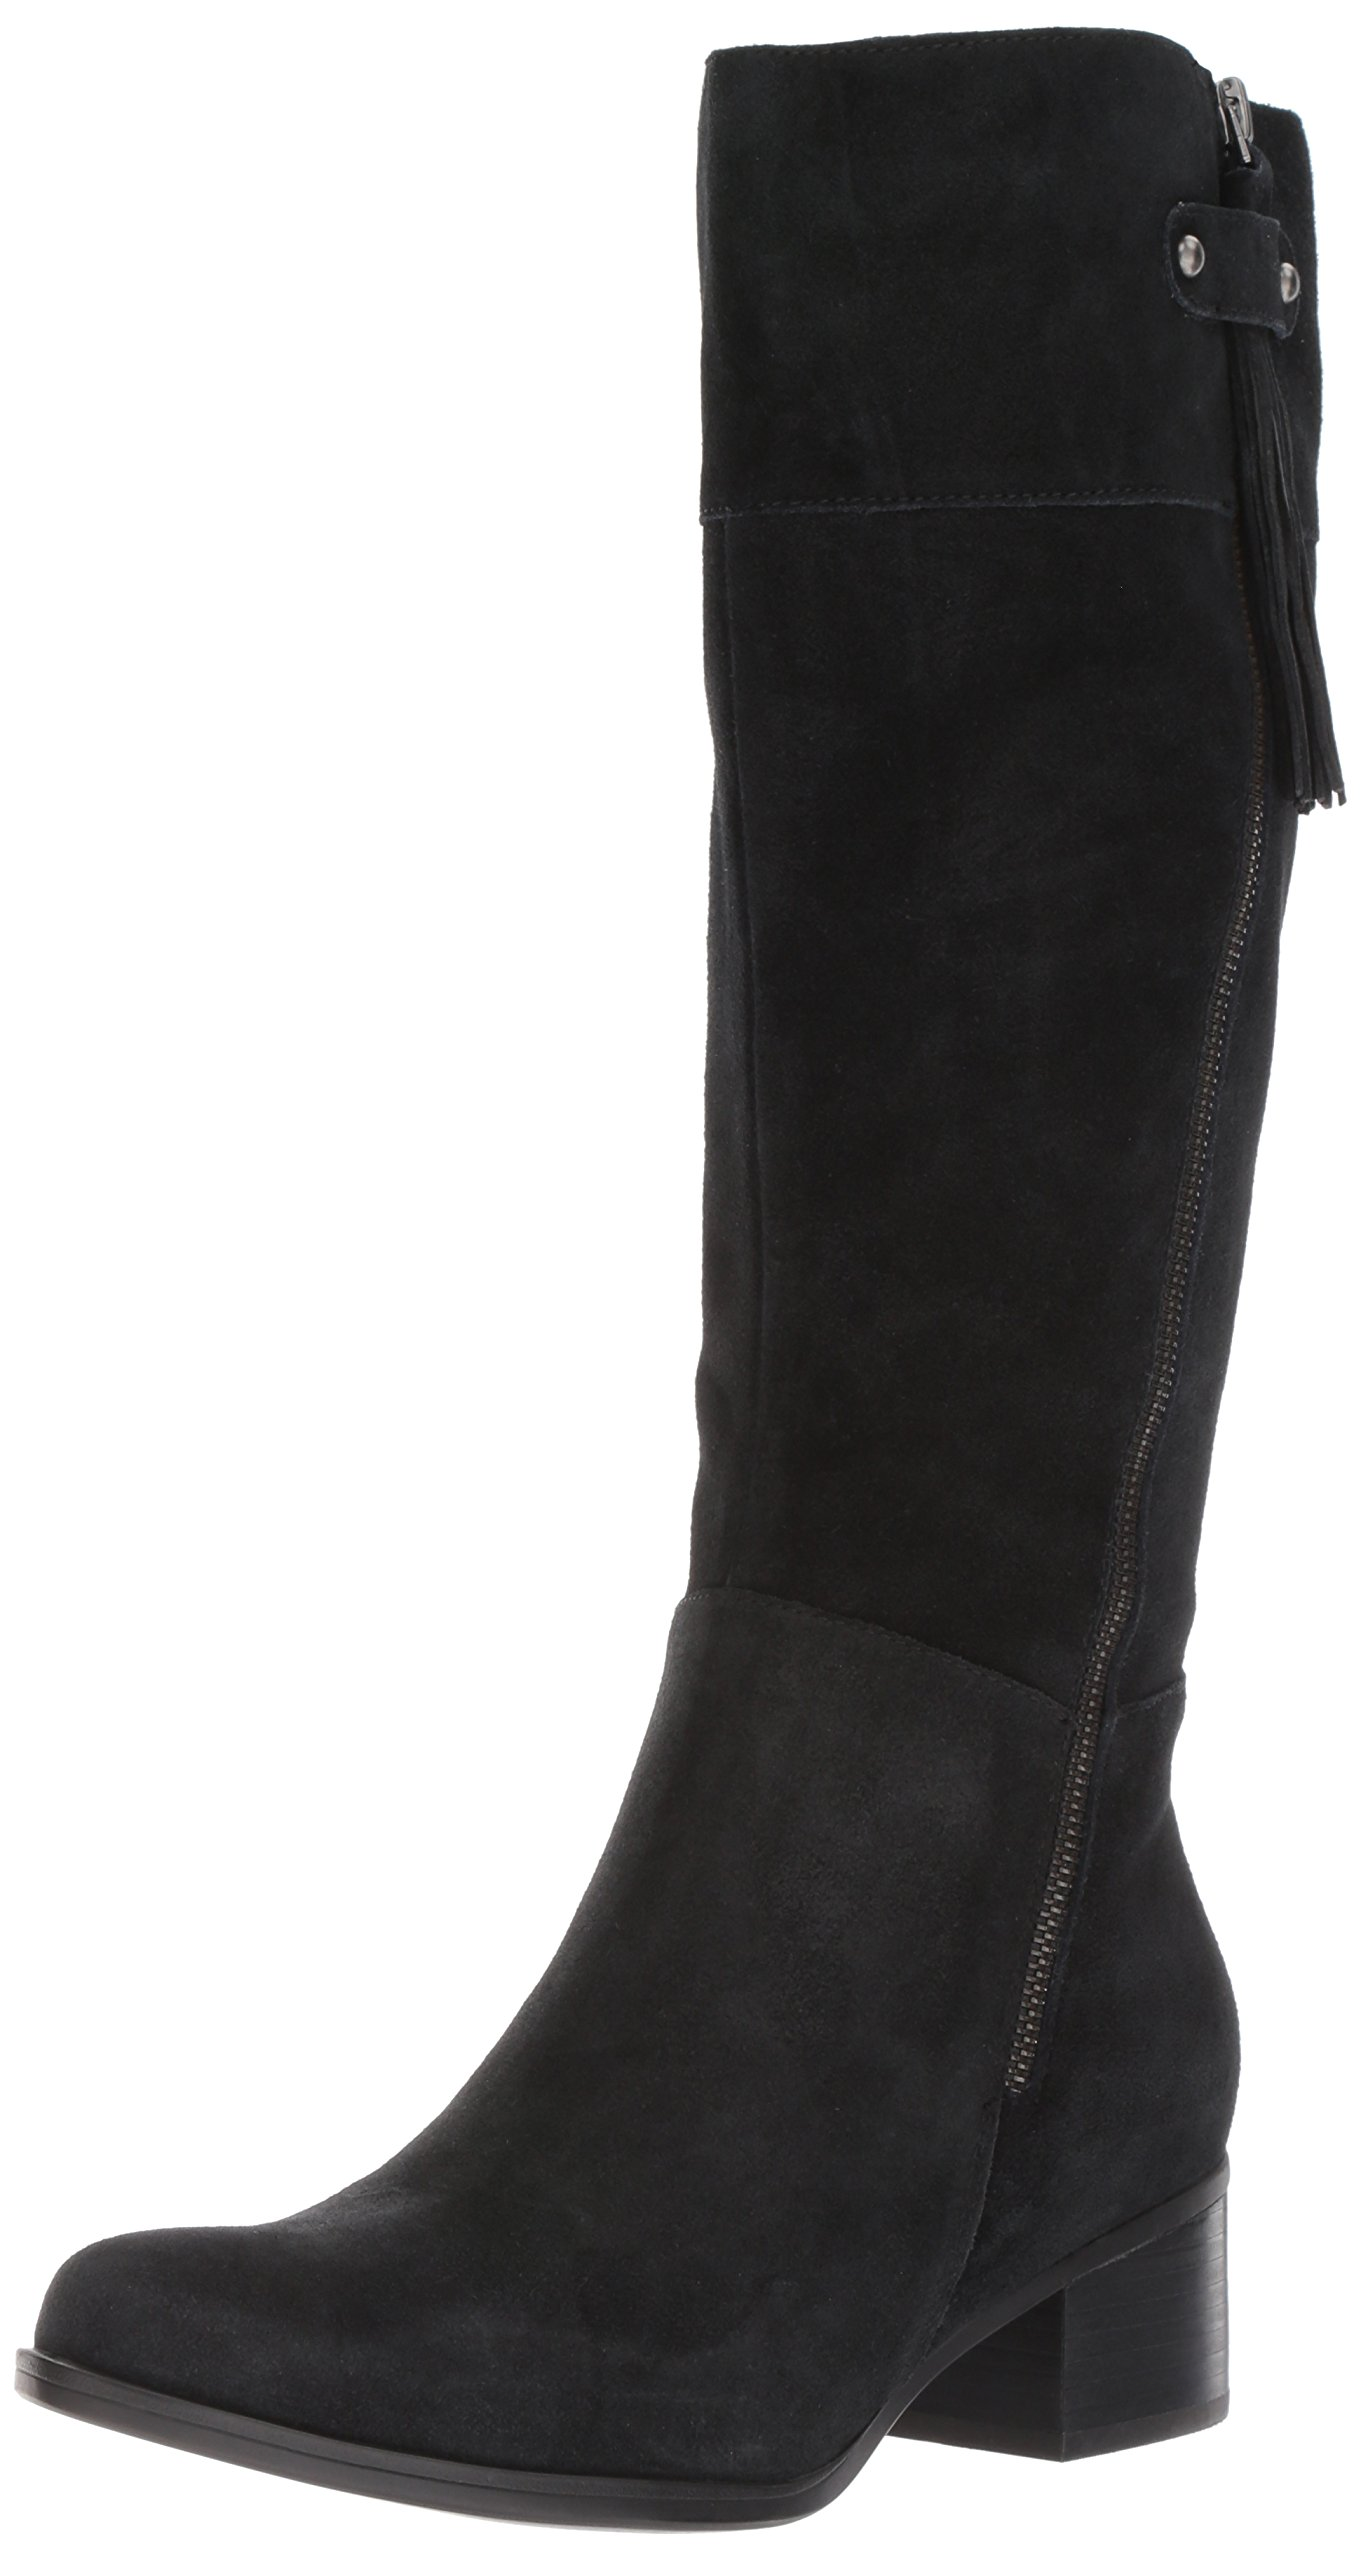 Naturalizer Women's Demi Riding Boot, Black, 10 M US by Naturalizer